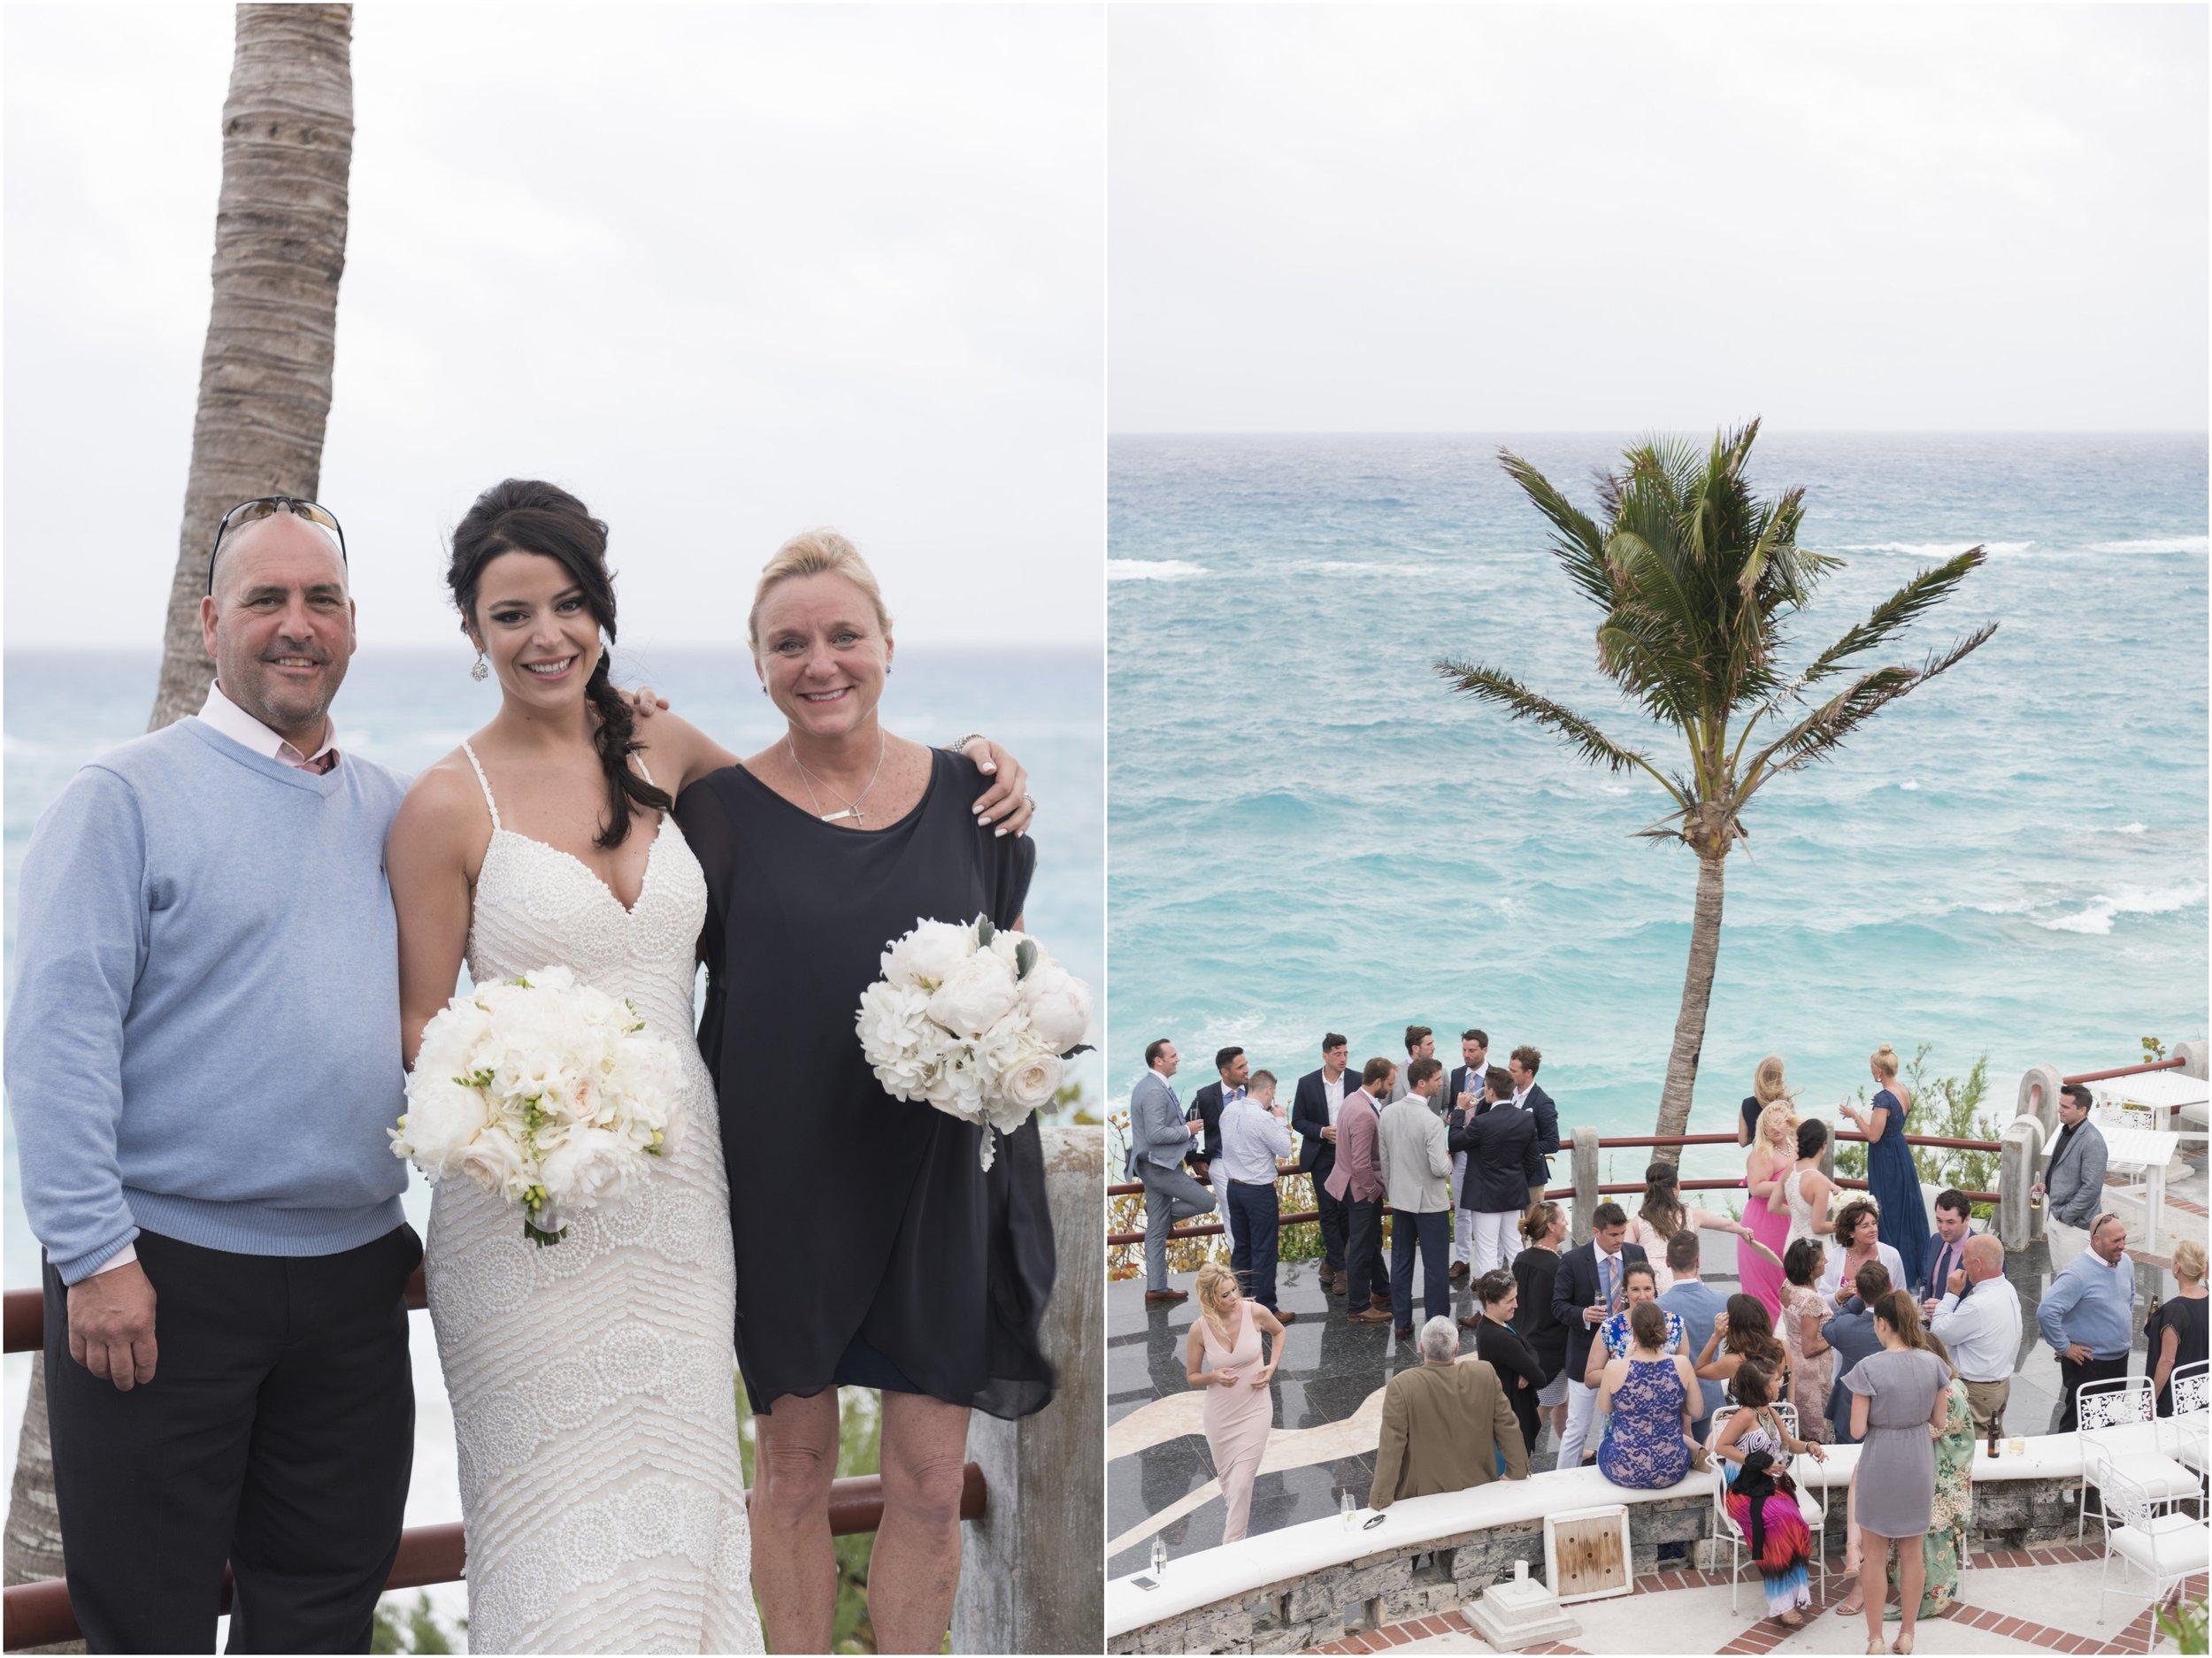 ©FianderFoto_Alyse_Stevie_Wedding_Bermuda_42.jpg